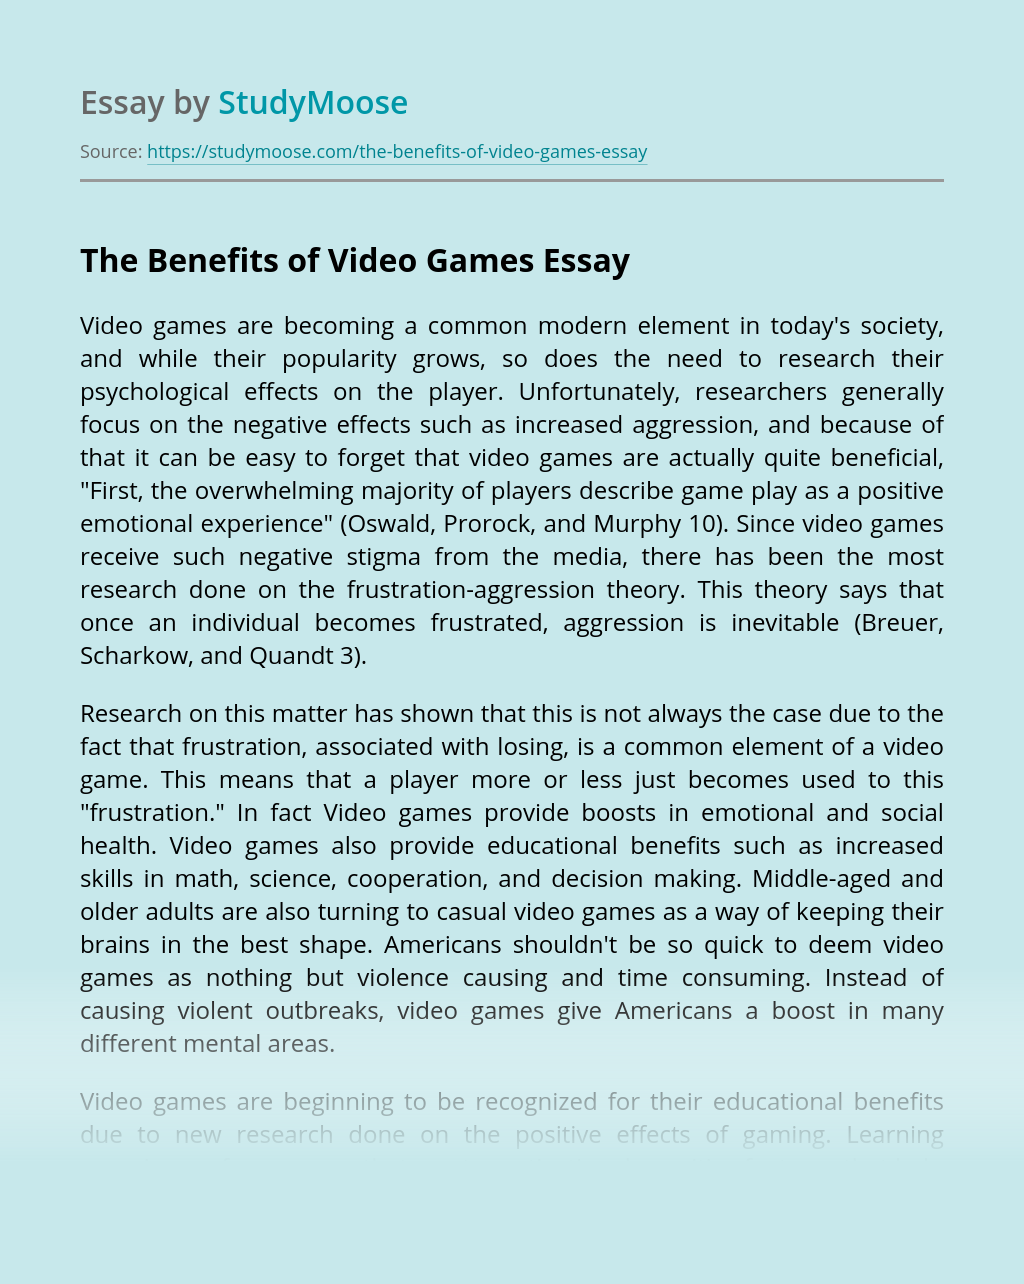 The Benefits of Video Games